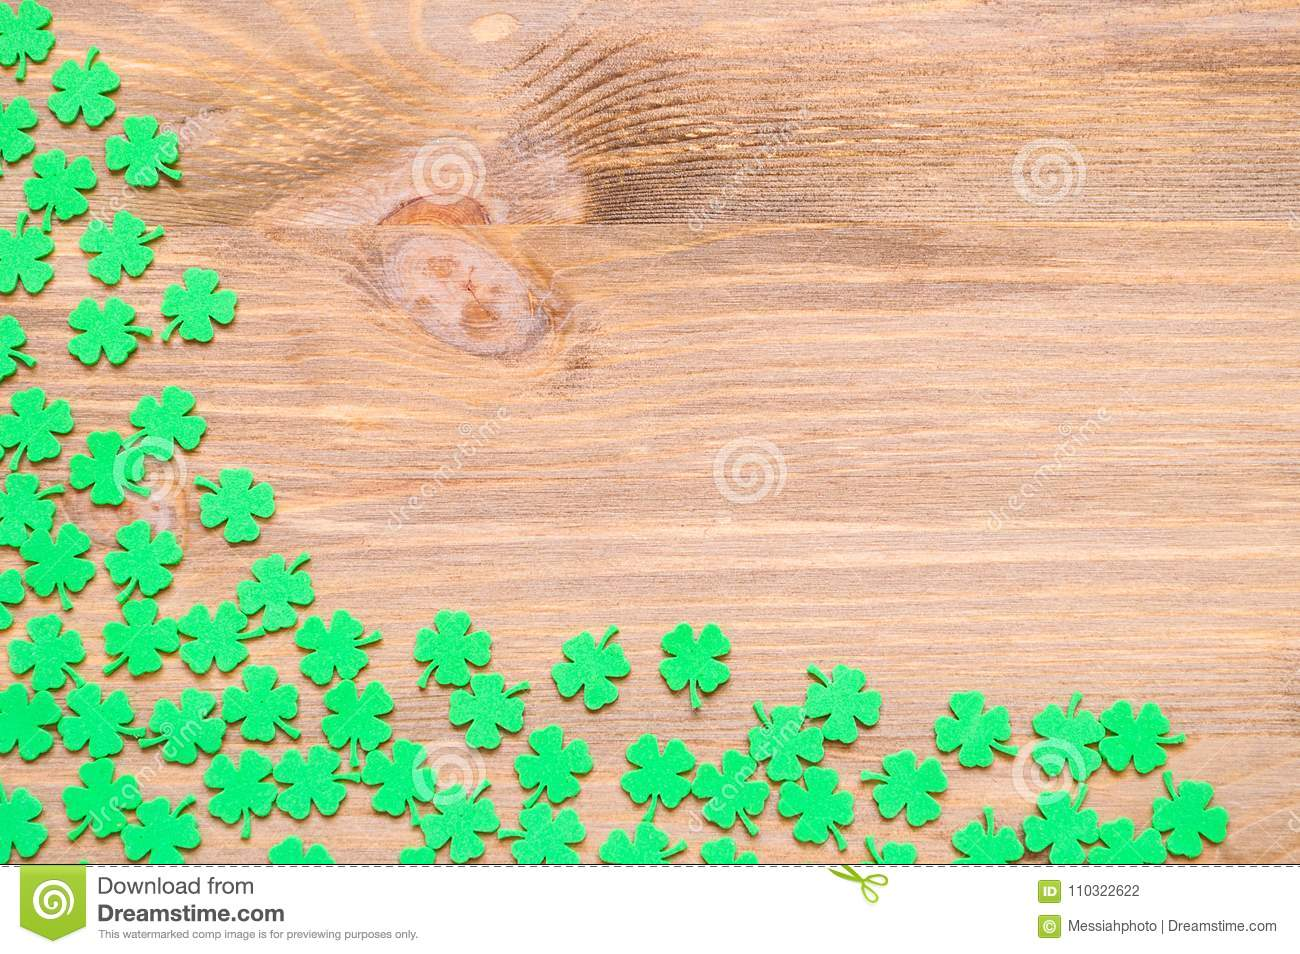 St Patricks Day background with green quatrefoils on wooden background, free space